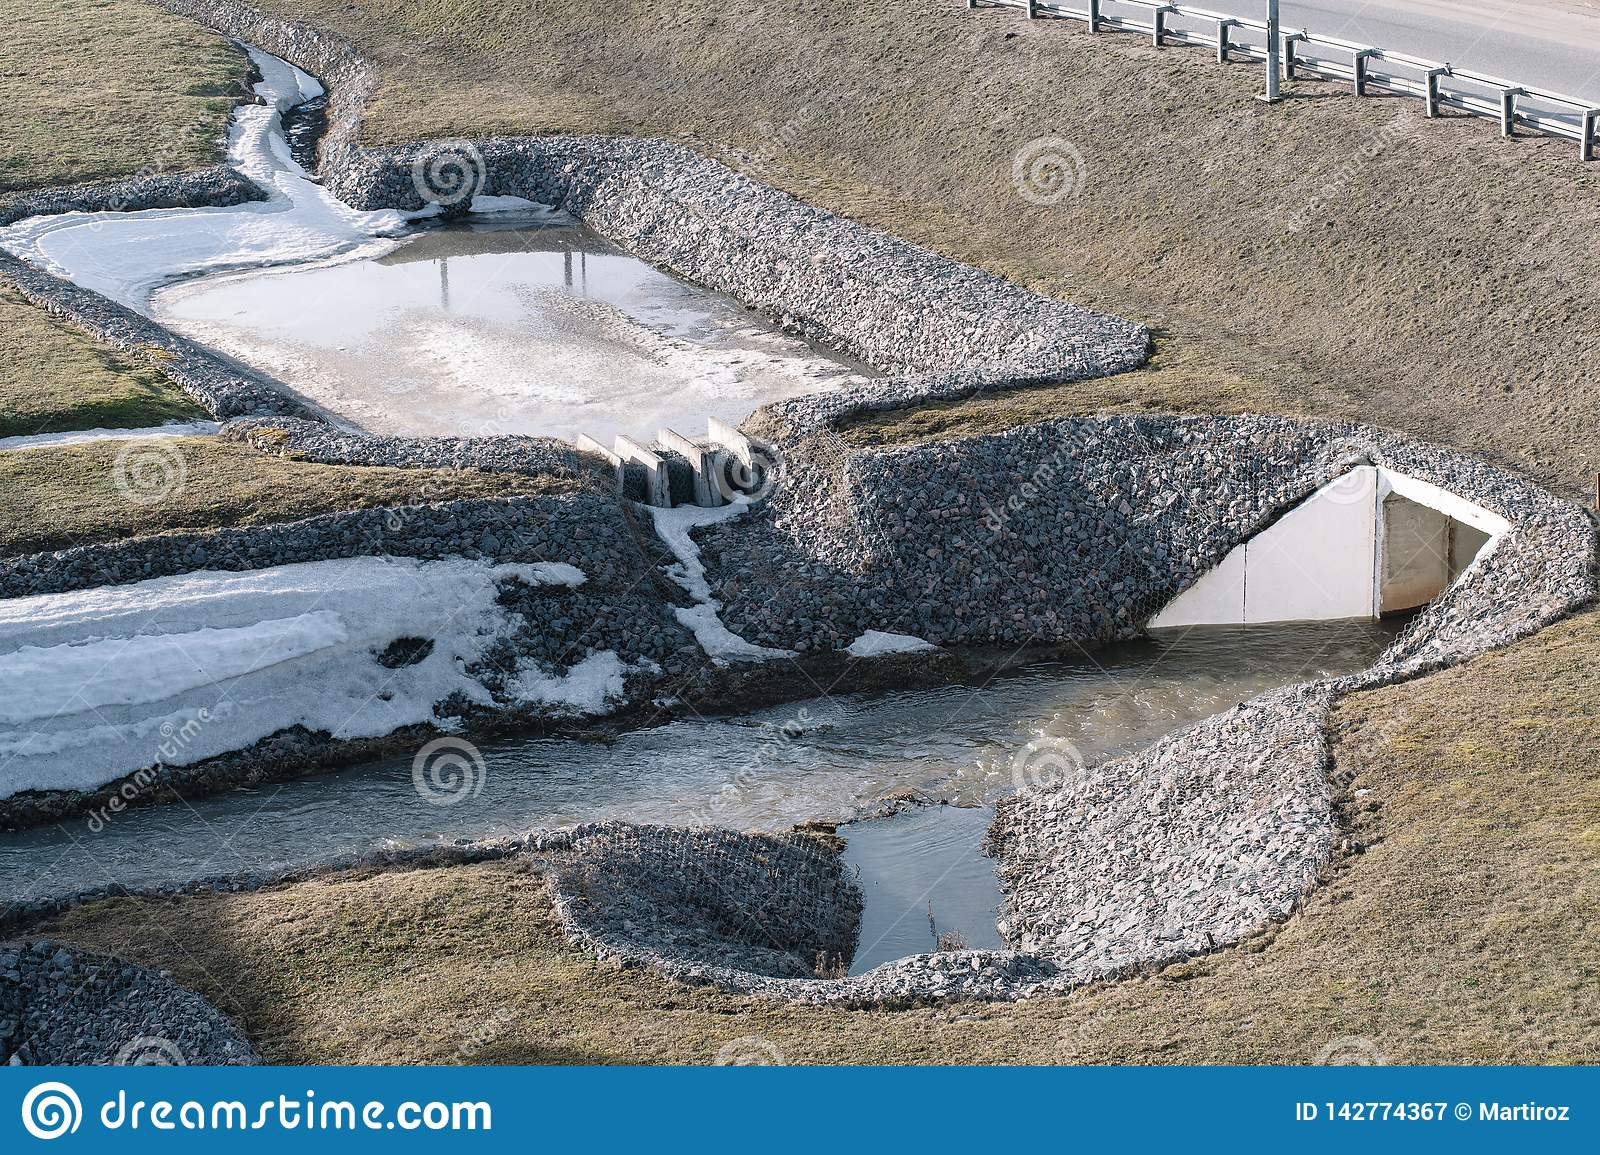 Drainage system for the highway reinforced with stones